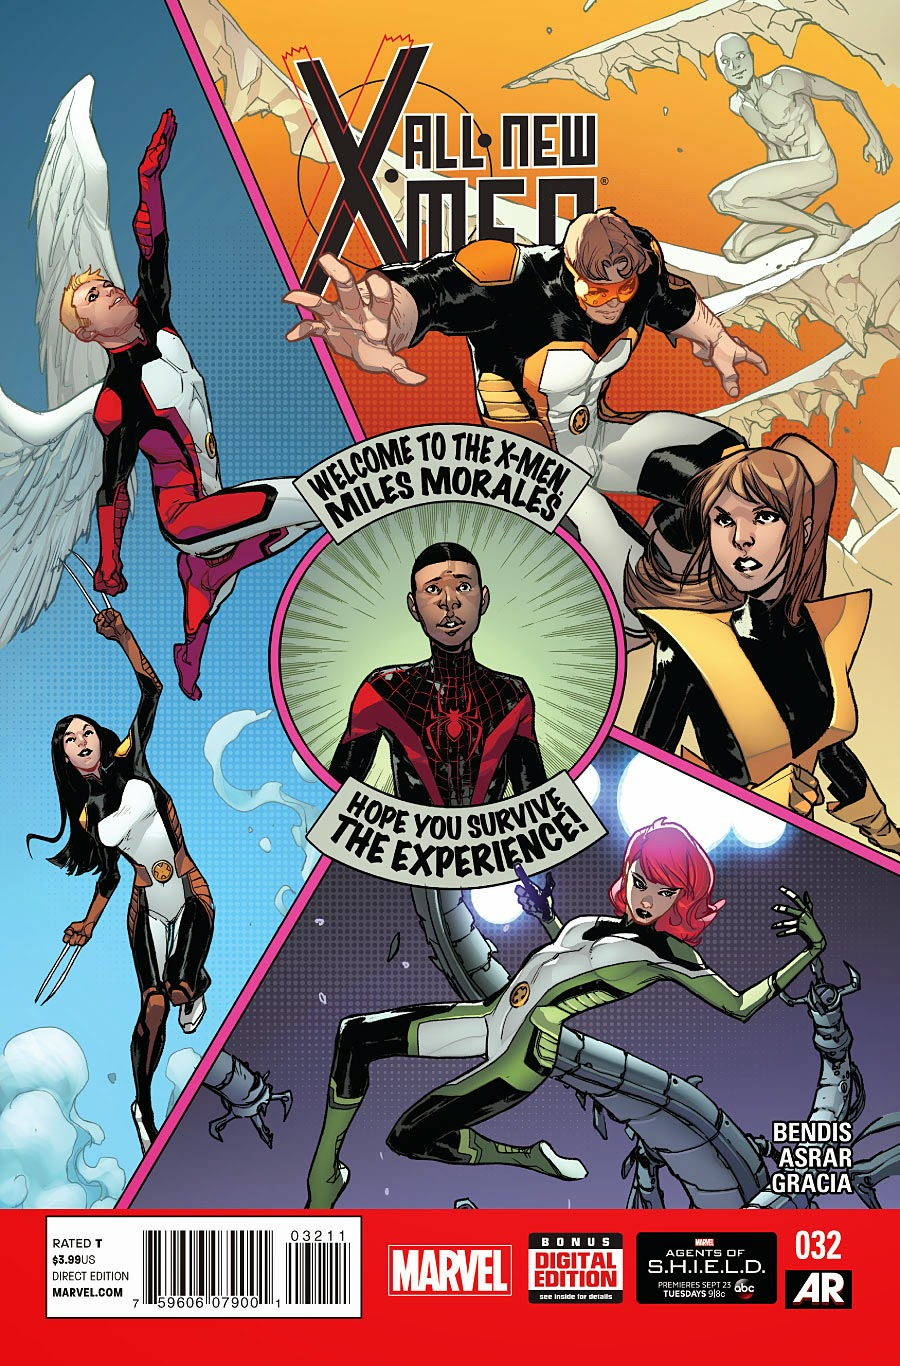 Man 32 Indicted In Alleged Misconduct With 14 Year Old: All New X-Men #32 Guest Starring Miles Morales